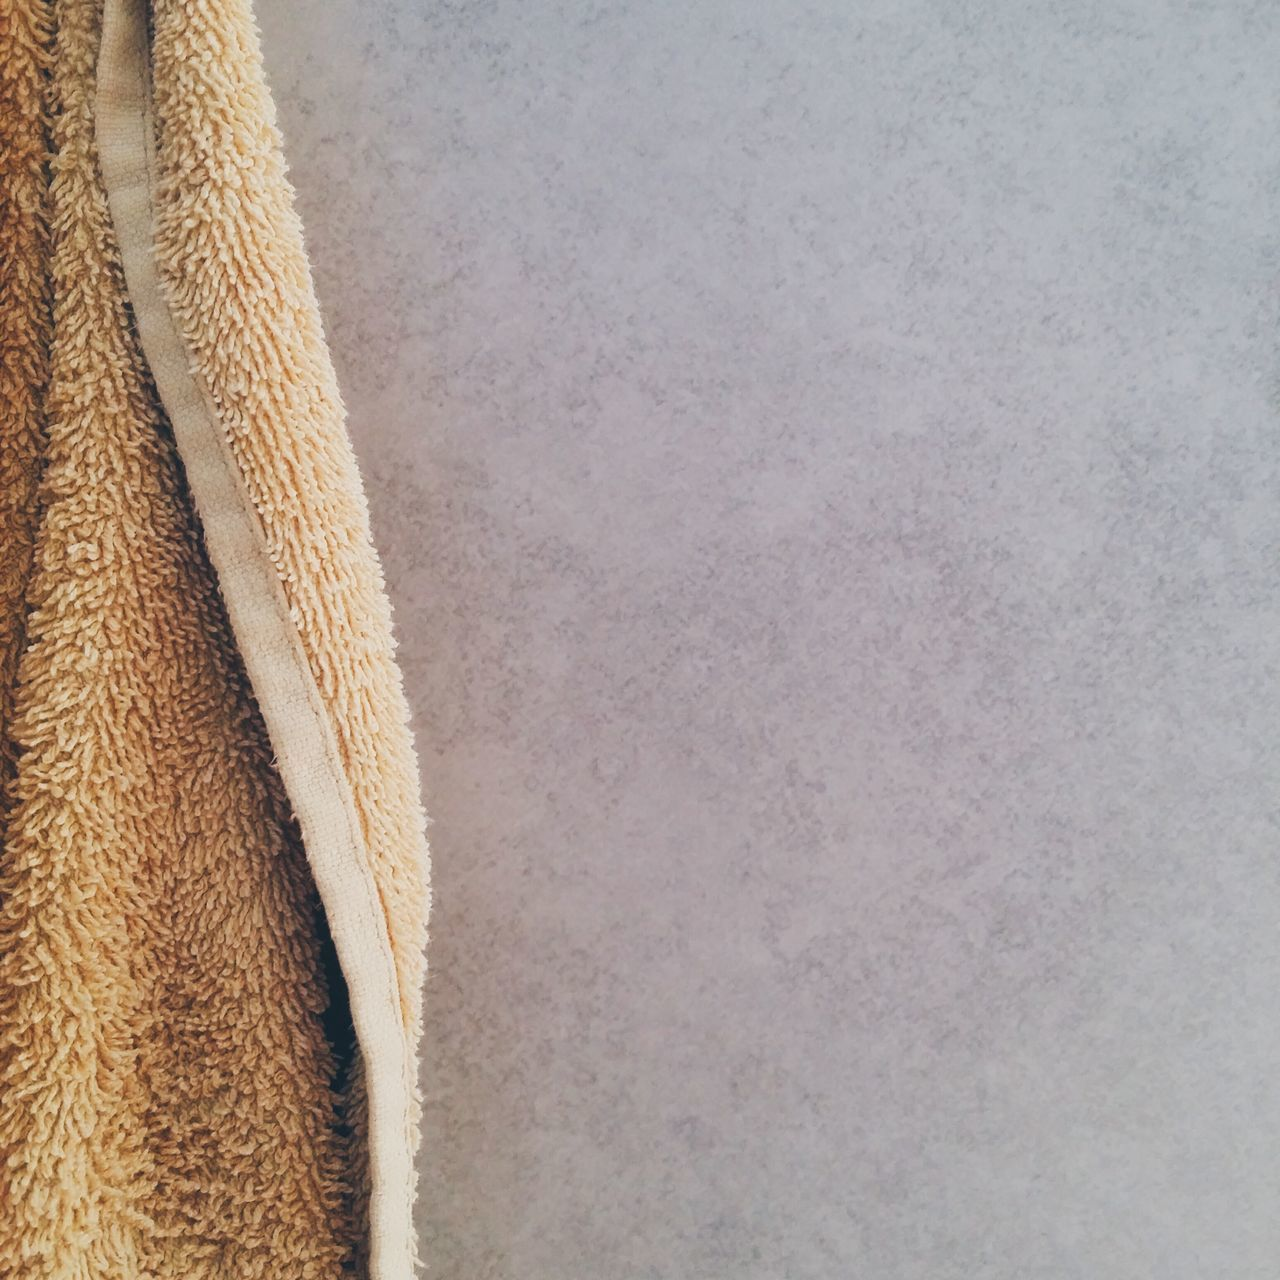 G.M time to wash my face and wake up.. Minimal Morning Rituals Everyday Lives VSCO Negative Space